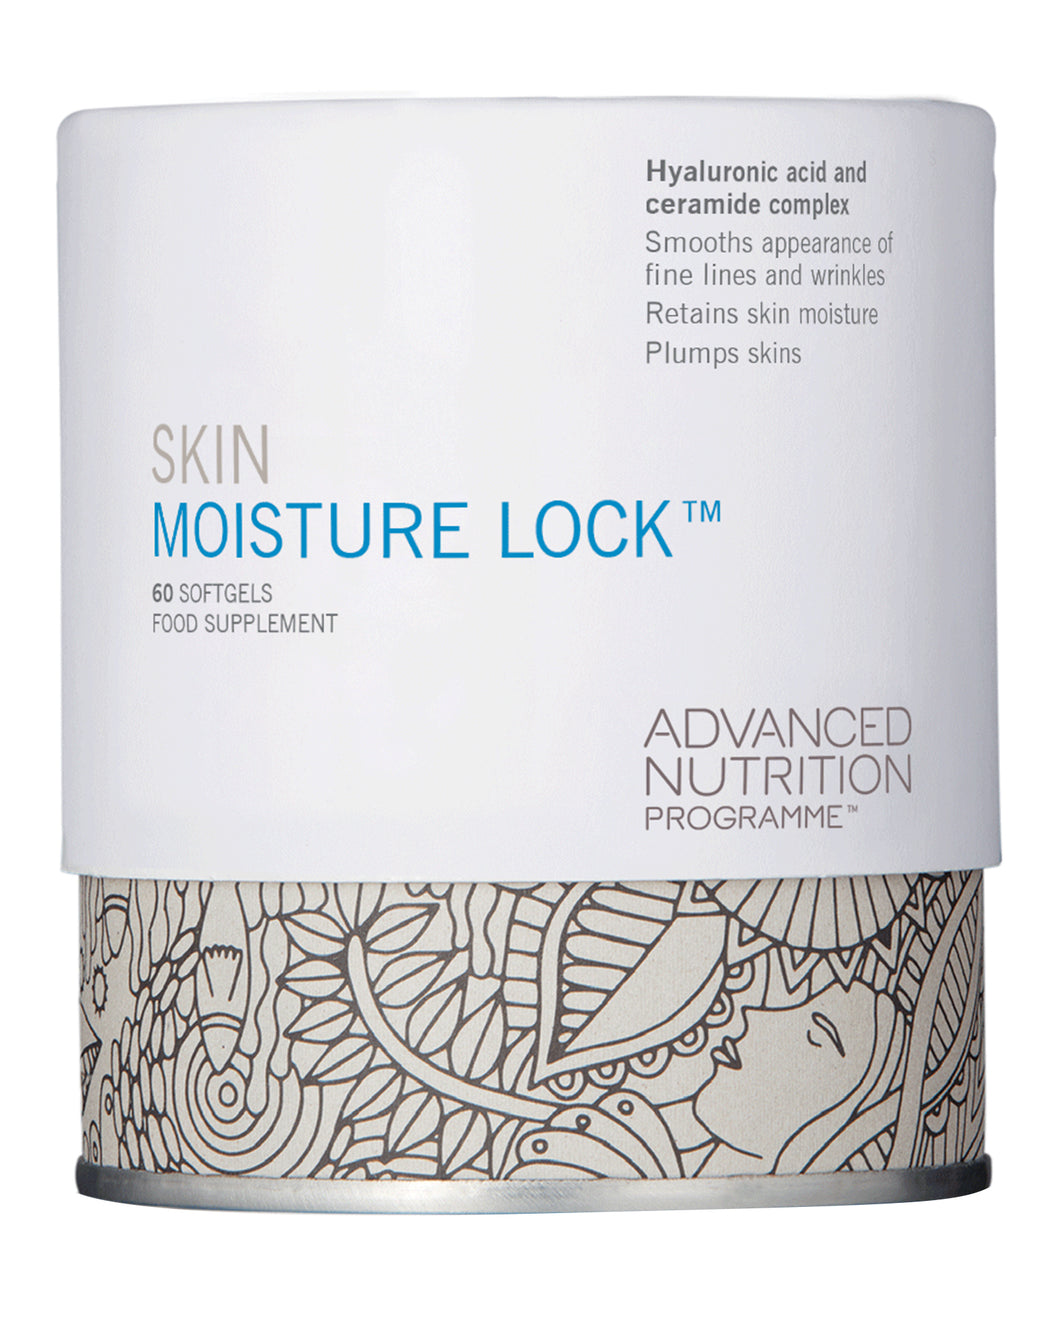 Advanced Nutrition Programme Skin Moisture Lock